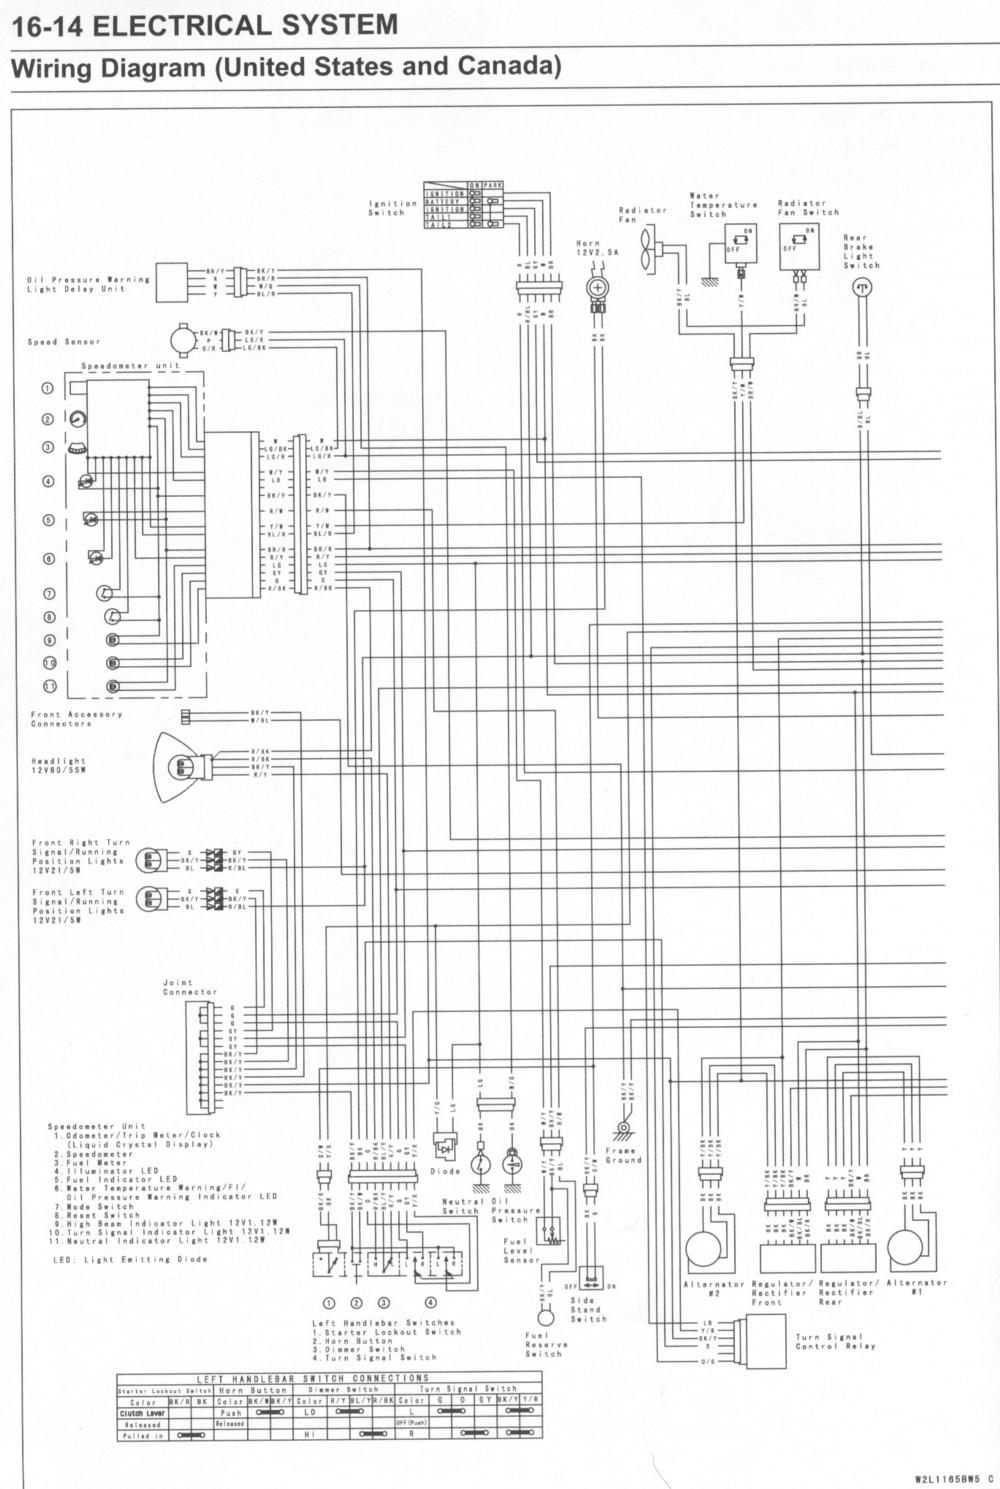 2008 Wiring Diagram Kawasaki Vulcan 1500 Fi Not Lossing Schematic Data Rh 35 American Football Ausruestung De 93kawasakivulcan 88